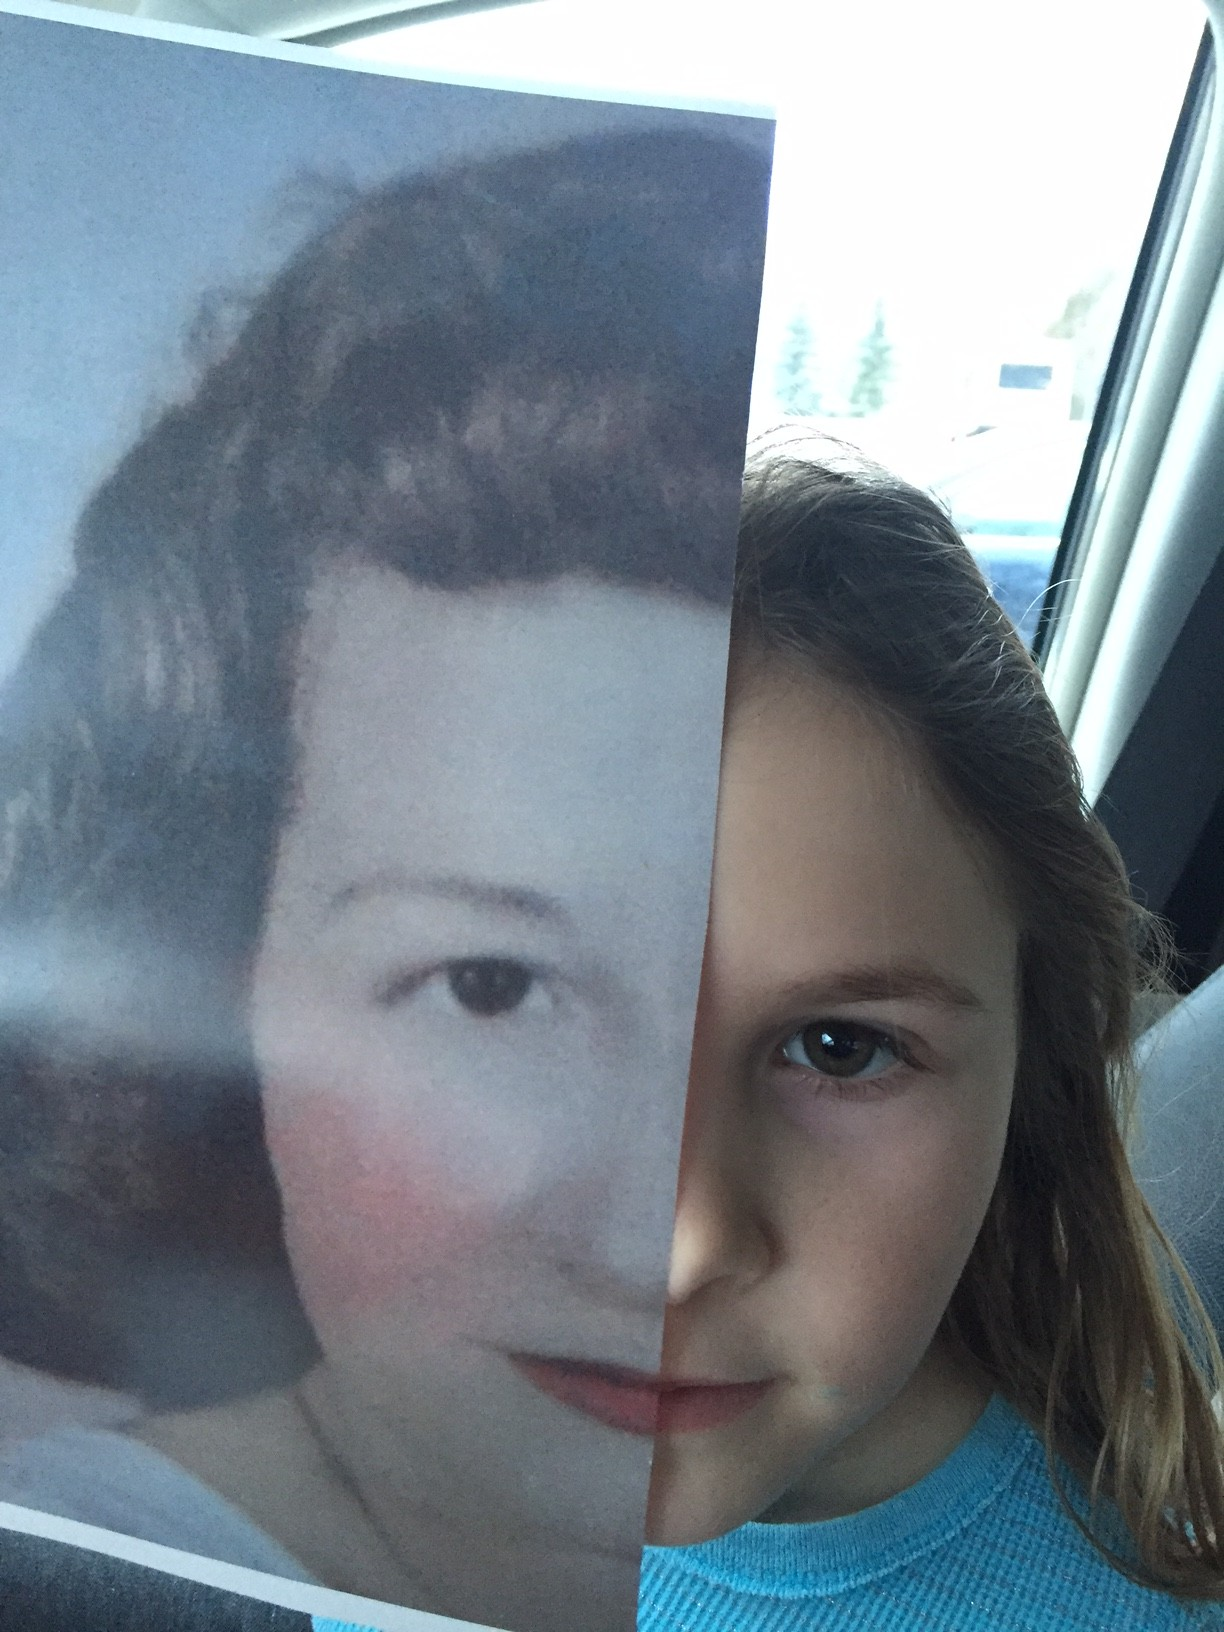 Look-Alike Family Photos: These Relatives are 80 Years Apart